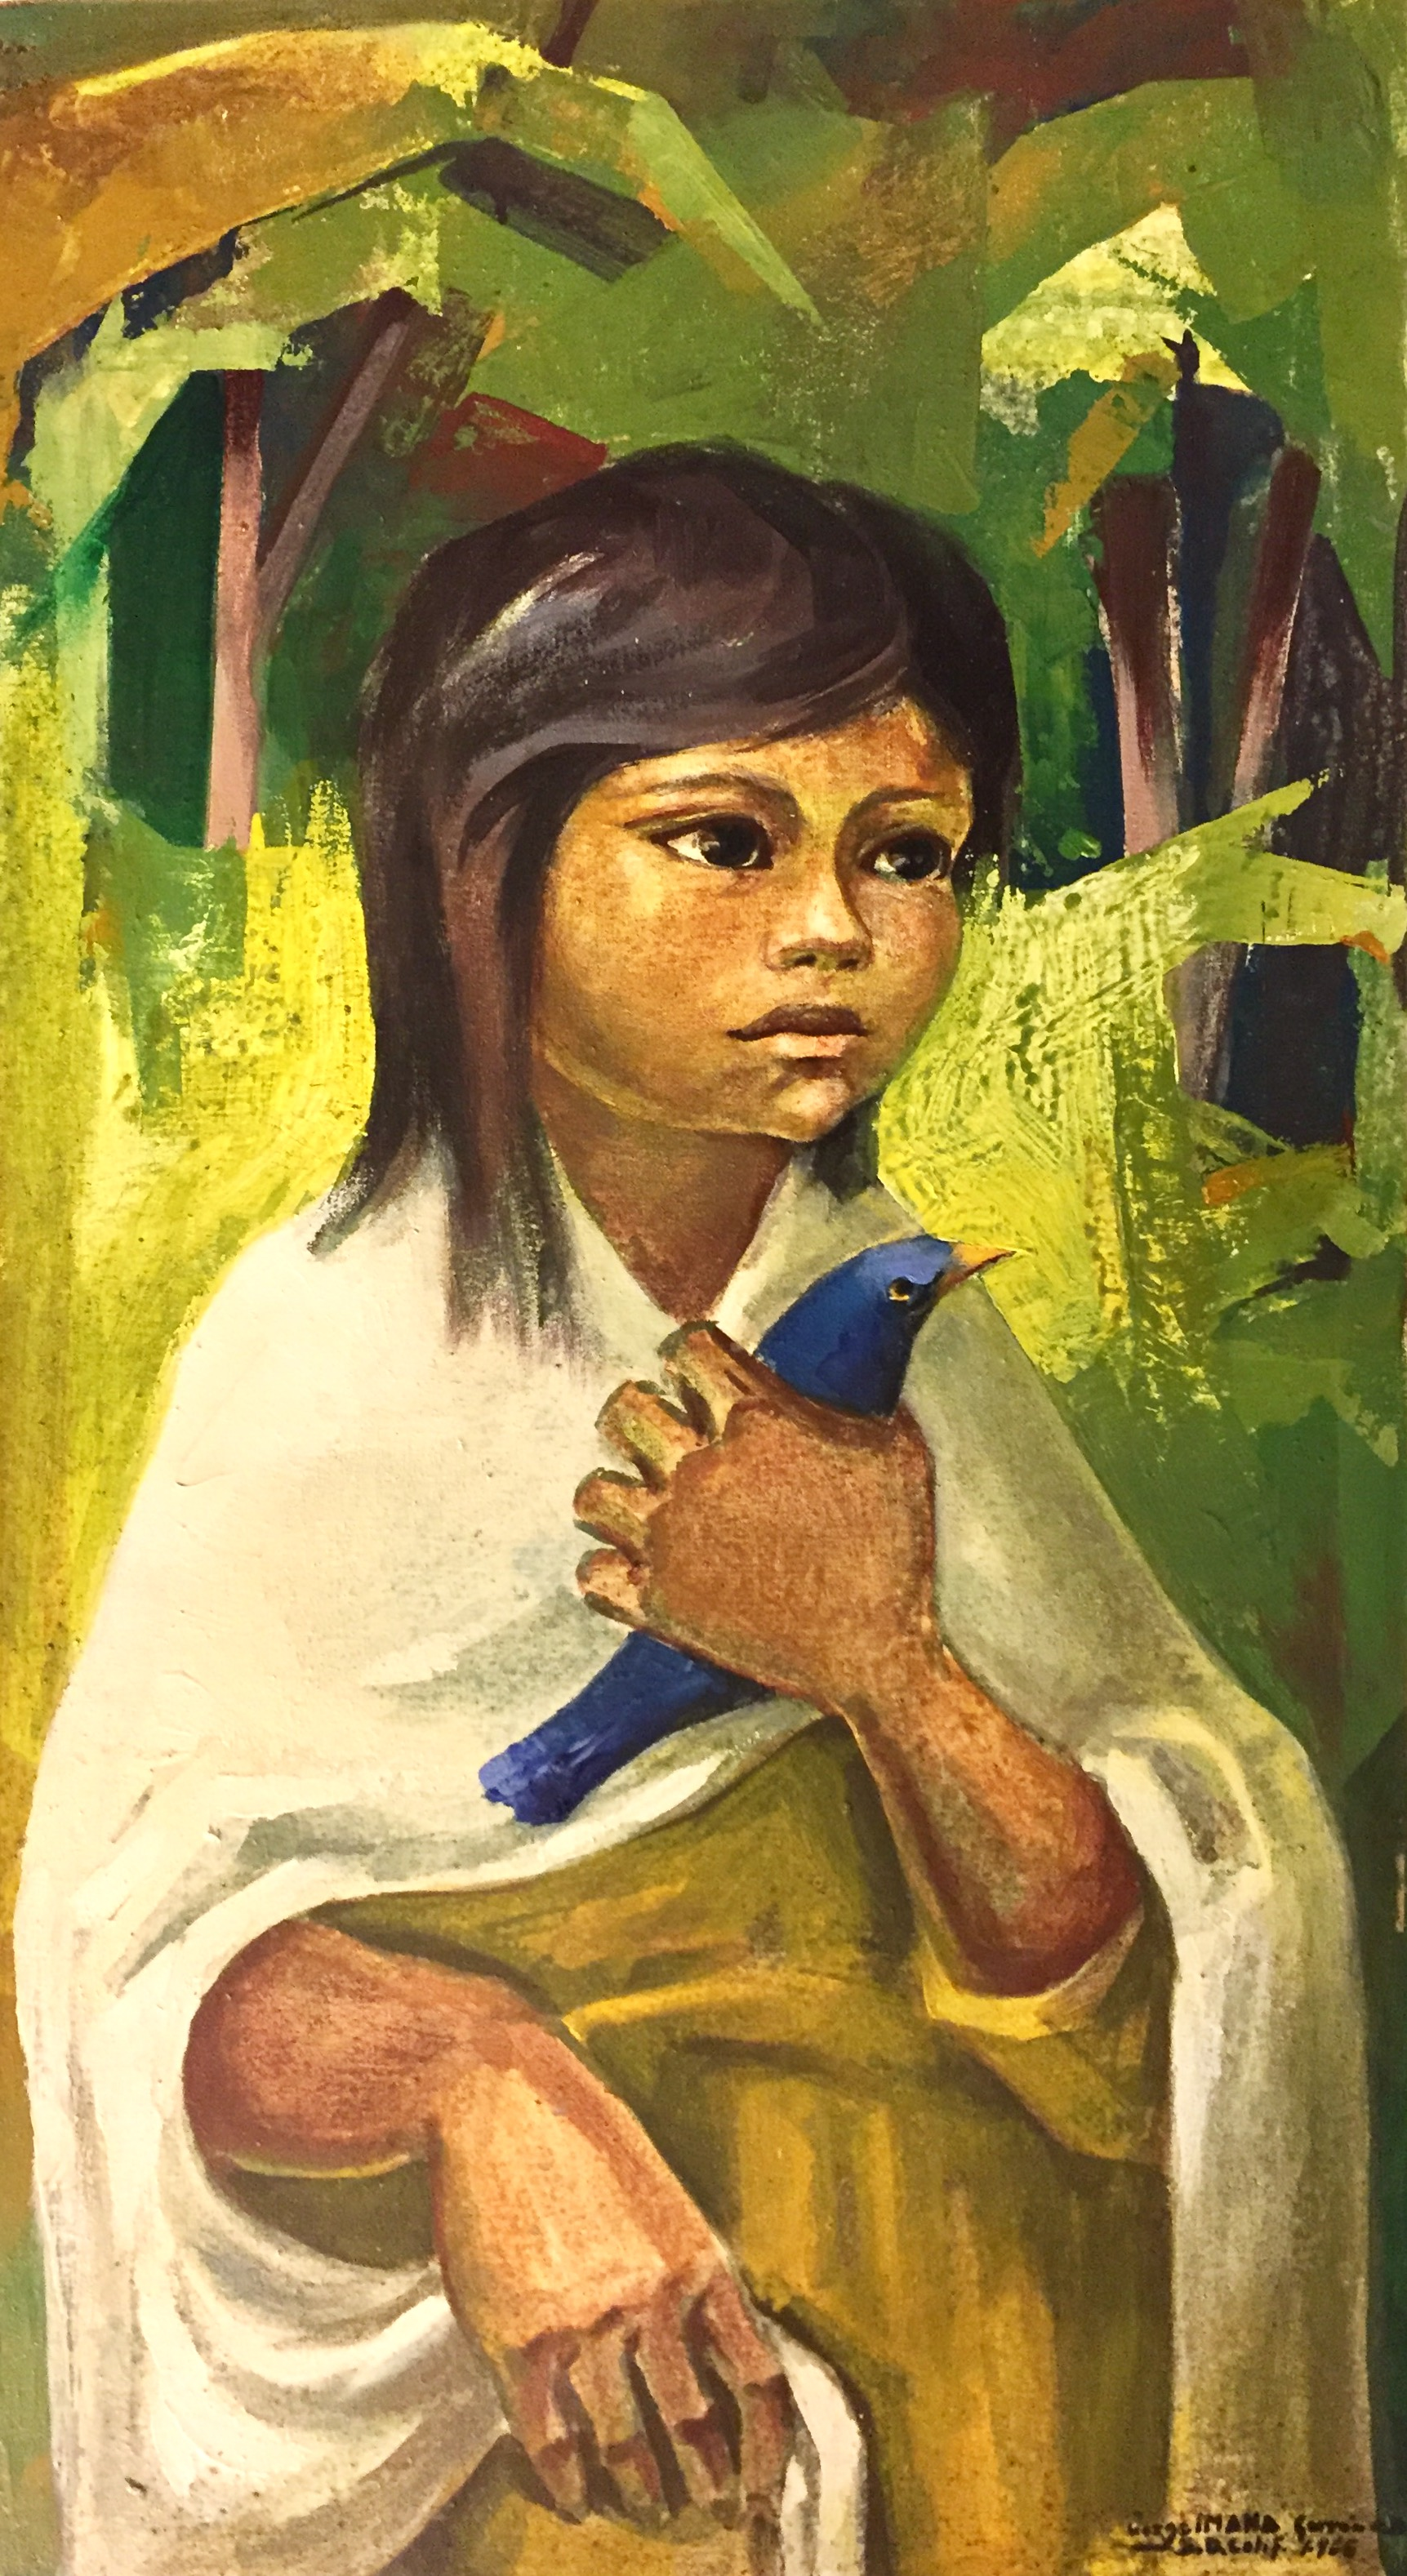 """""""Girl with Bird"""" (oil on canvas) by Jorge Imana Garron. Celebrated as one of the Masters of Bolivian Art of the 20th Century, Jorge Imana Garron's extraordinary work was painted in 1965 and was exhibited at the 12th Annual San Diego County Fiesta Art Exhibition."""